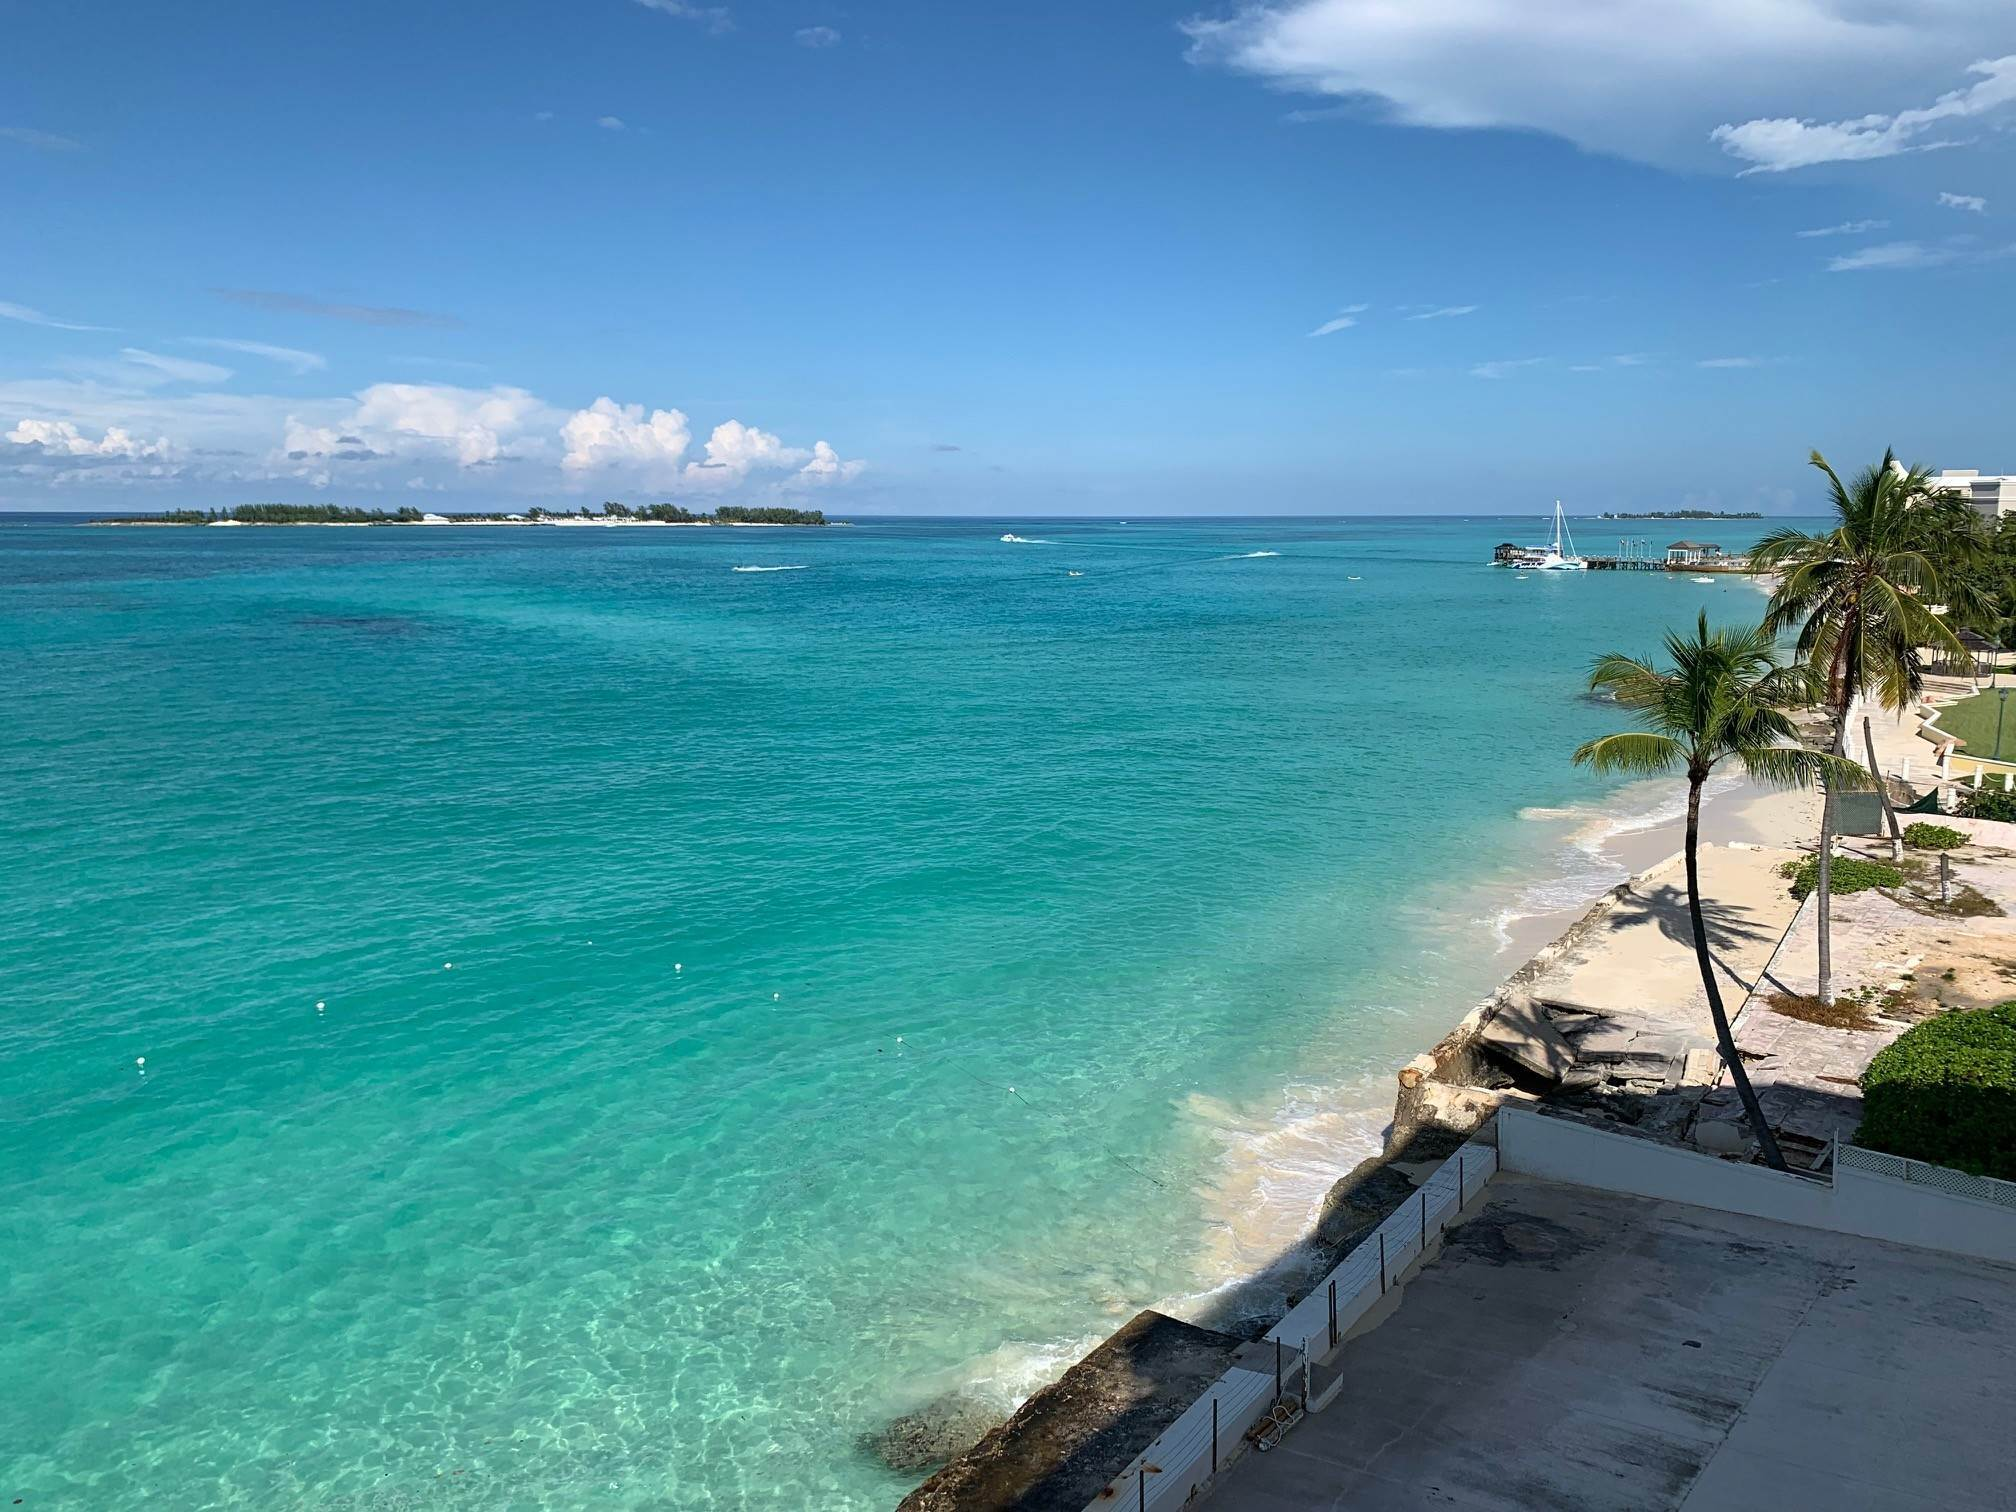 Co-op / Condo for Sale at Contemporary Ocean View Condo - In the Heart of Cable Beach - MLS 40601 Conchrest, Cable Beach, Nassau And Paradise Island Bahamas